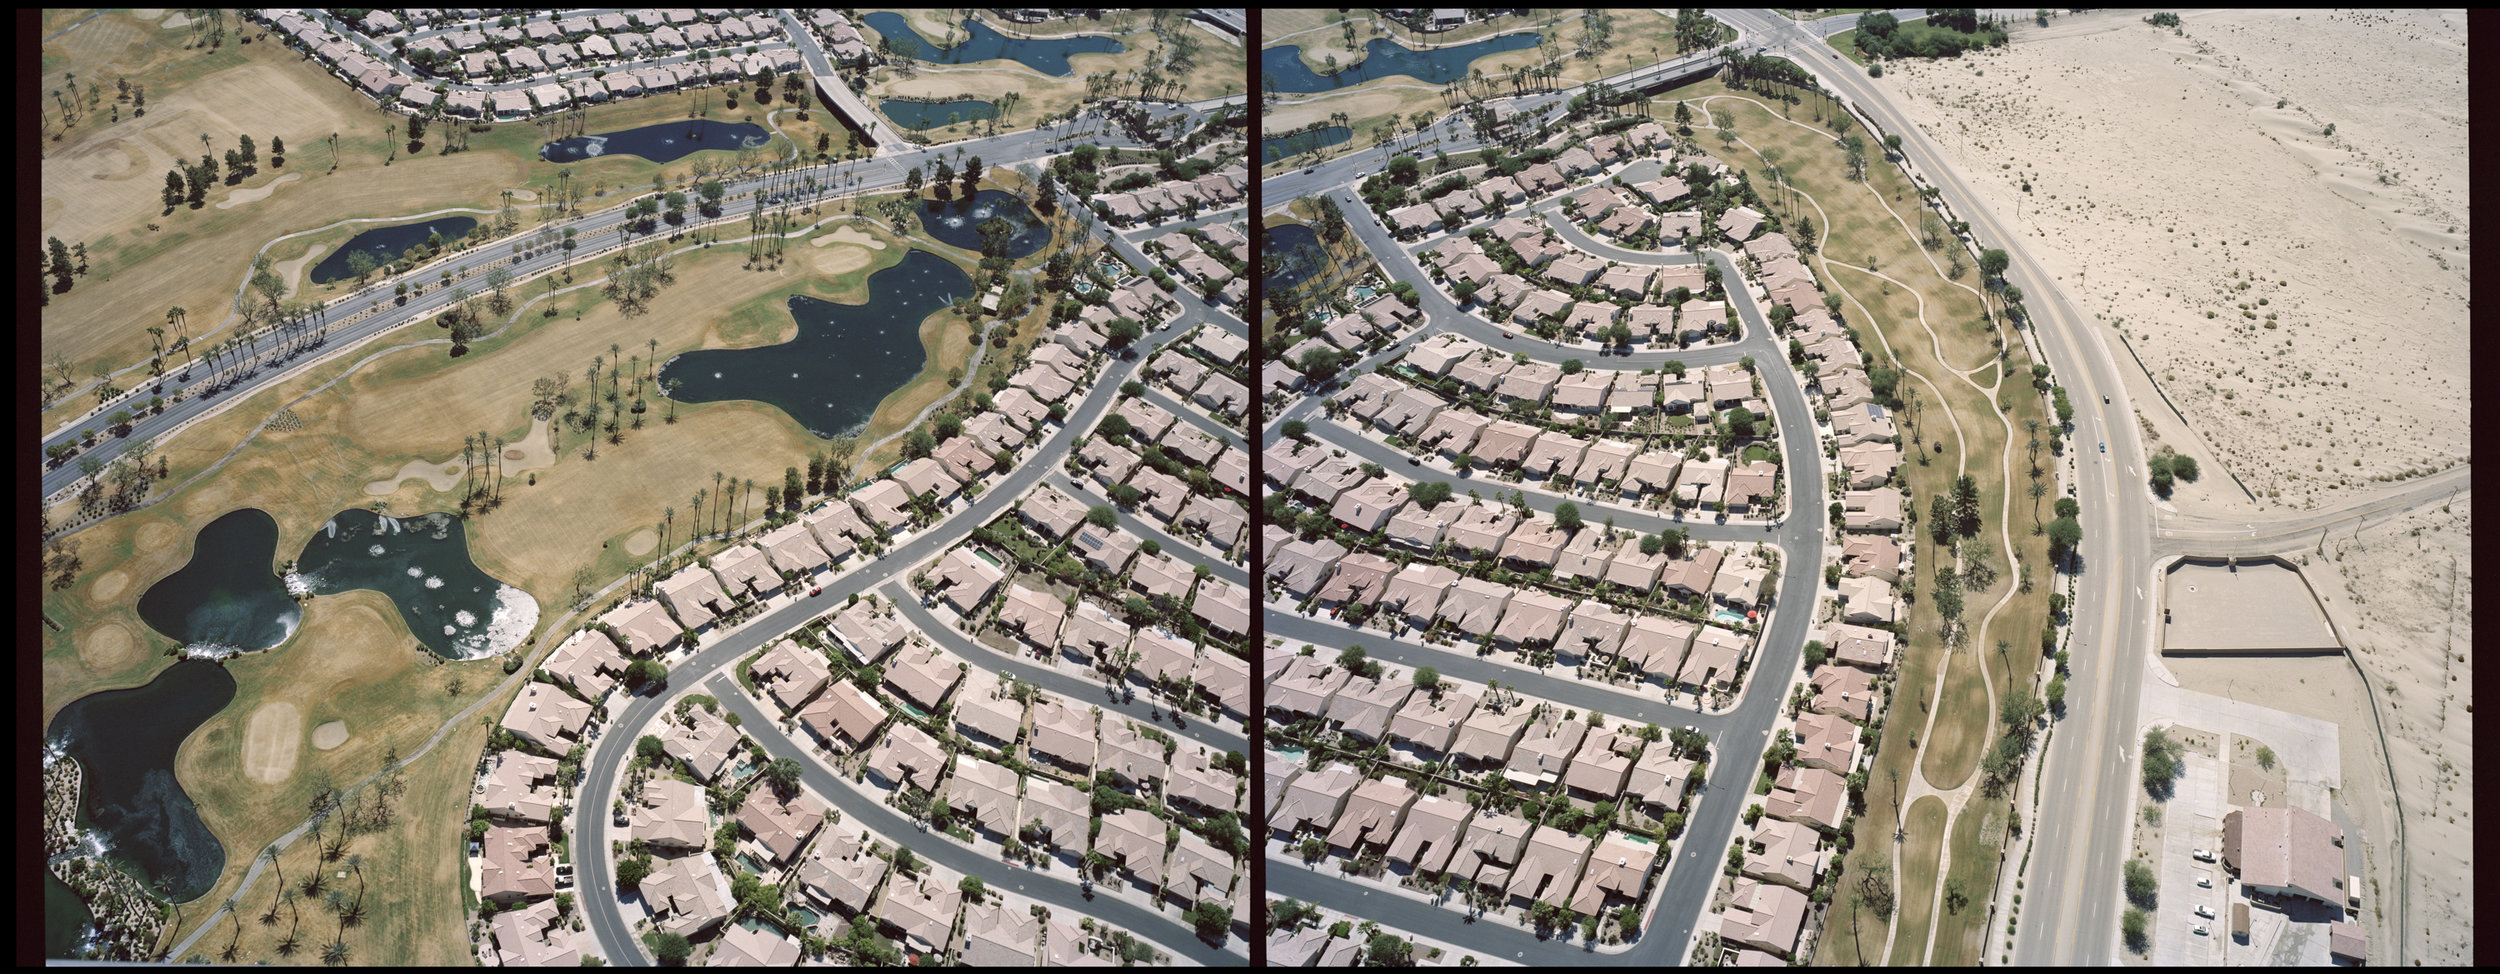 """The Suburbs. Palm Springs, California, USA, 2015.   """" California is a place in which a boom mentality and a sense of Chekhovian loss meet in uneasy suspension; in which the mind is troubled by some buried but ineradicable suspicion that things better work here, because here, beneath the immense bleached sky, is where we run out of continent. """" - Joan Didion, Slouching Towards Bethlehem"""